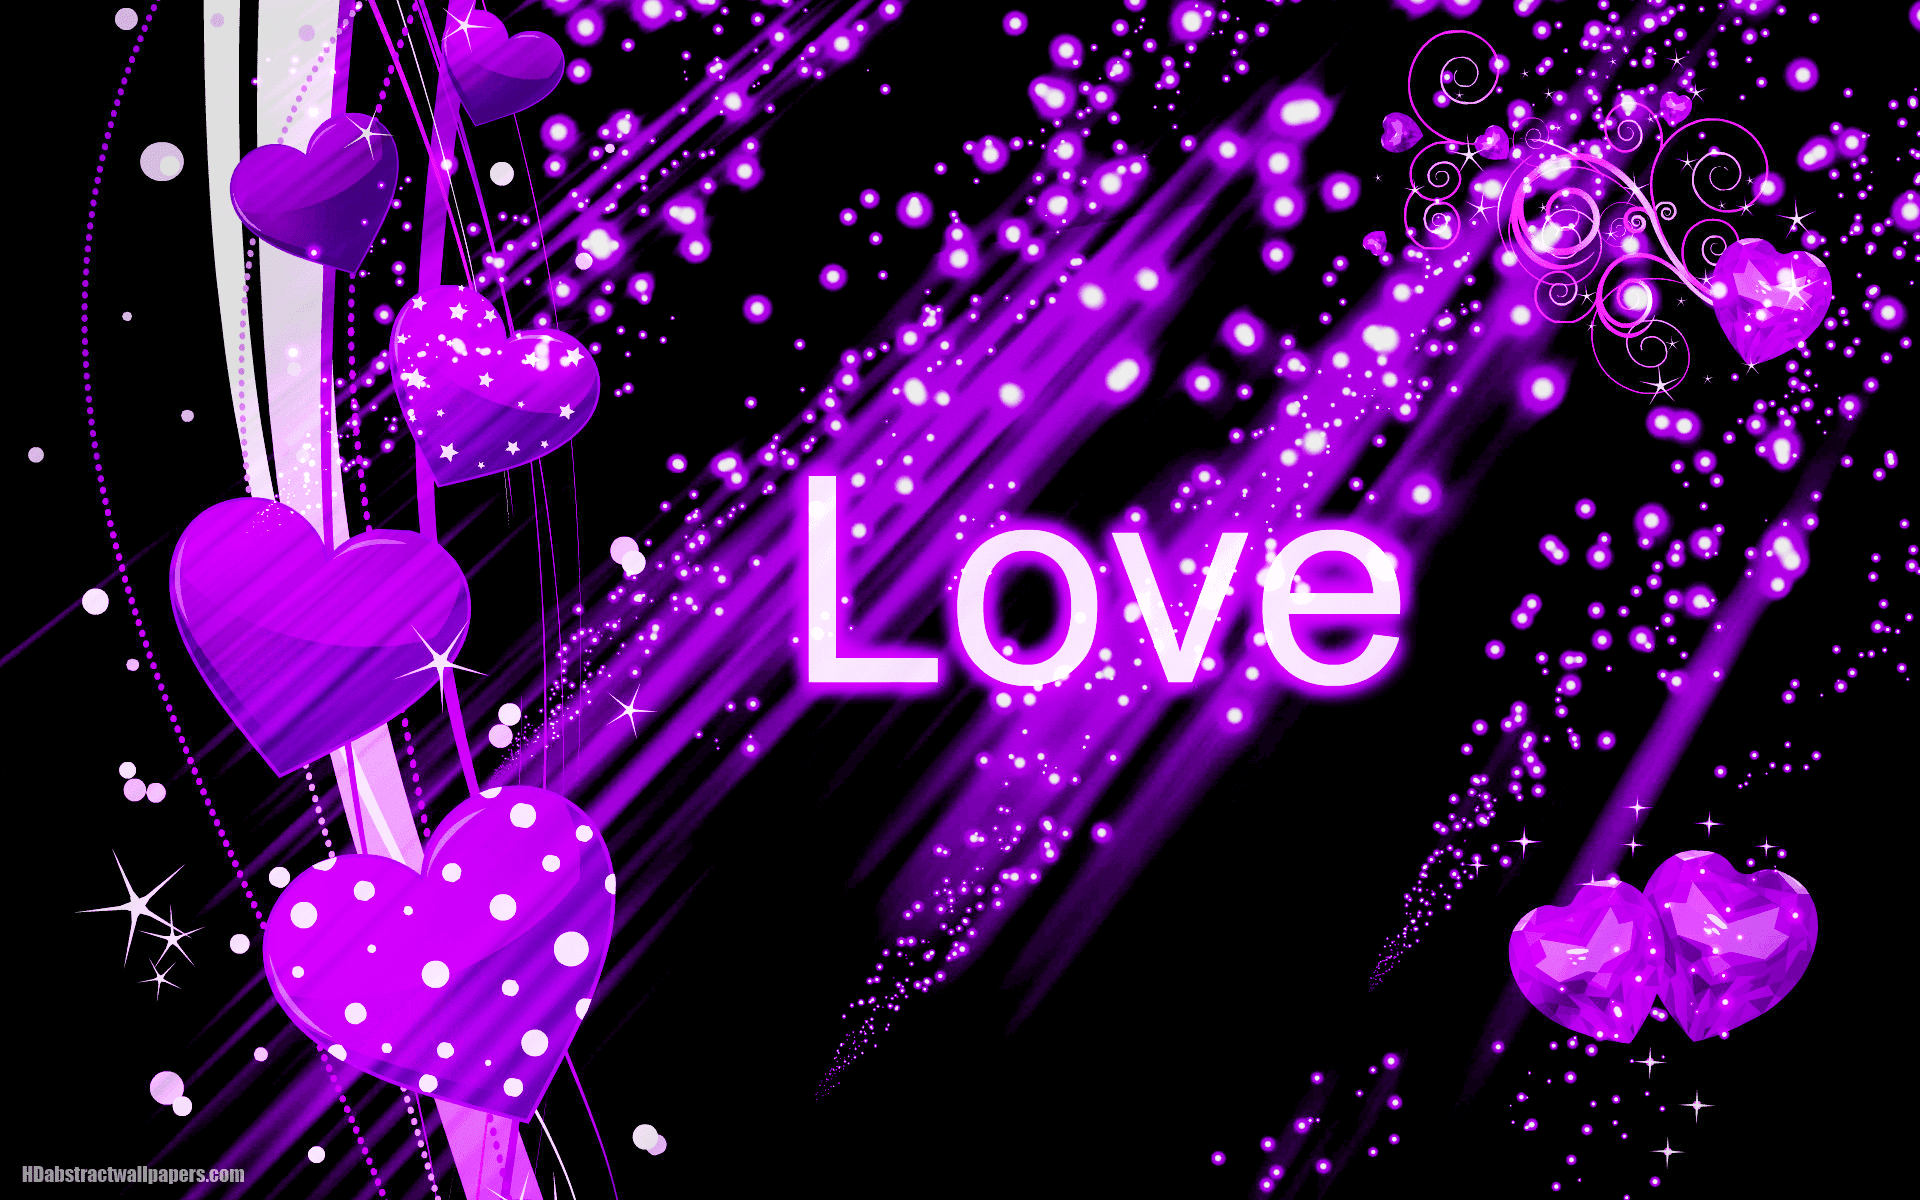 Wallpaper Hd 3d I Love You : Black abstract wallpaper with purple love hearts HD Abstract Wallpapers